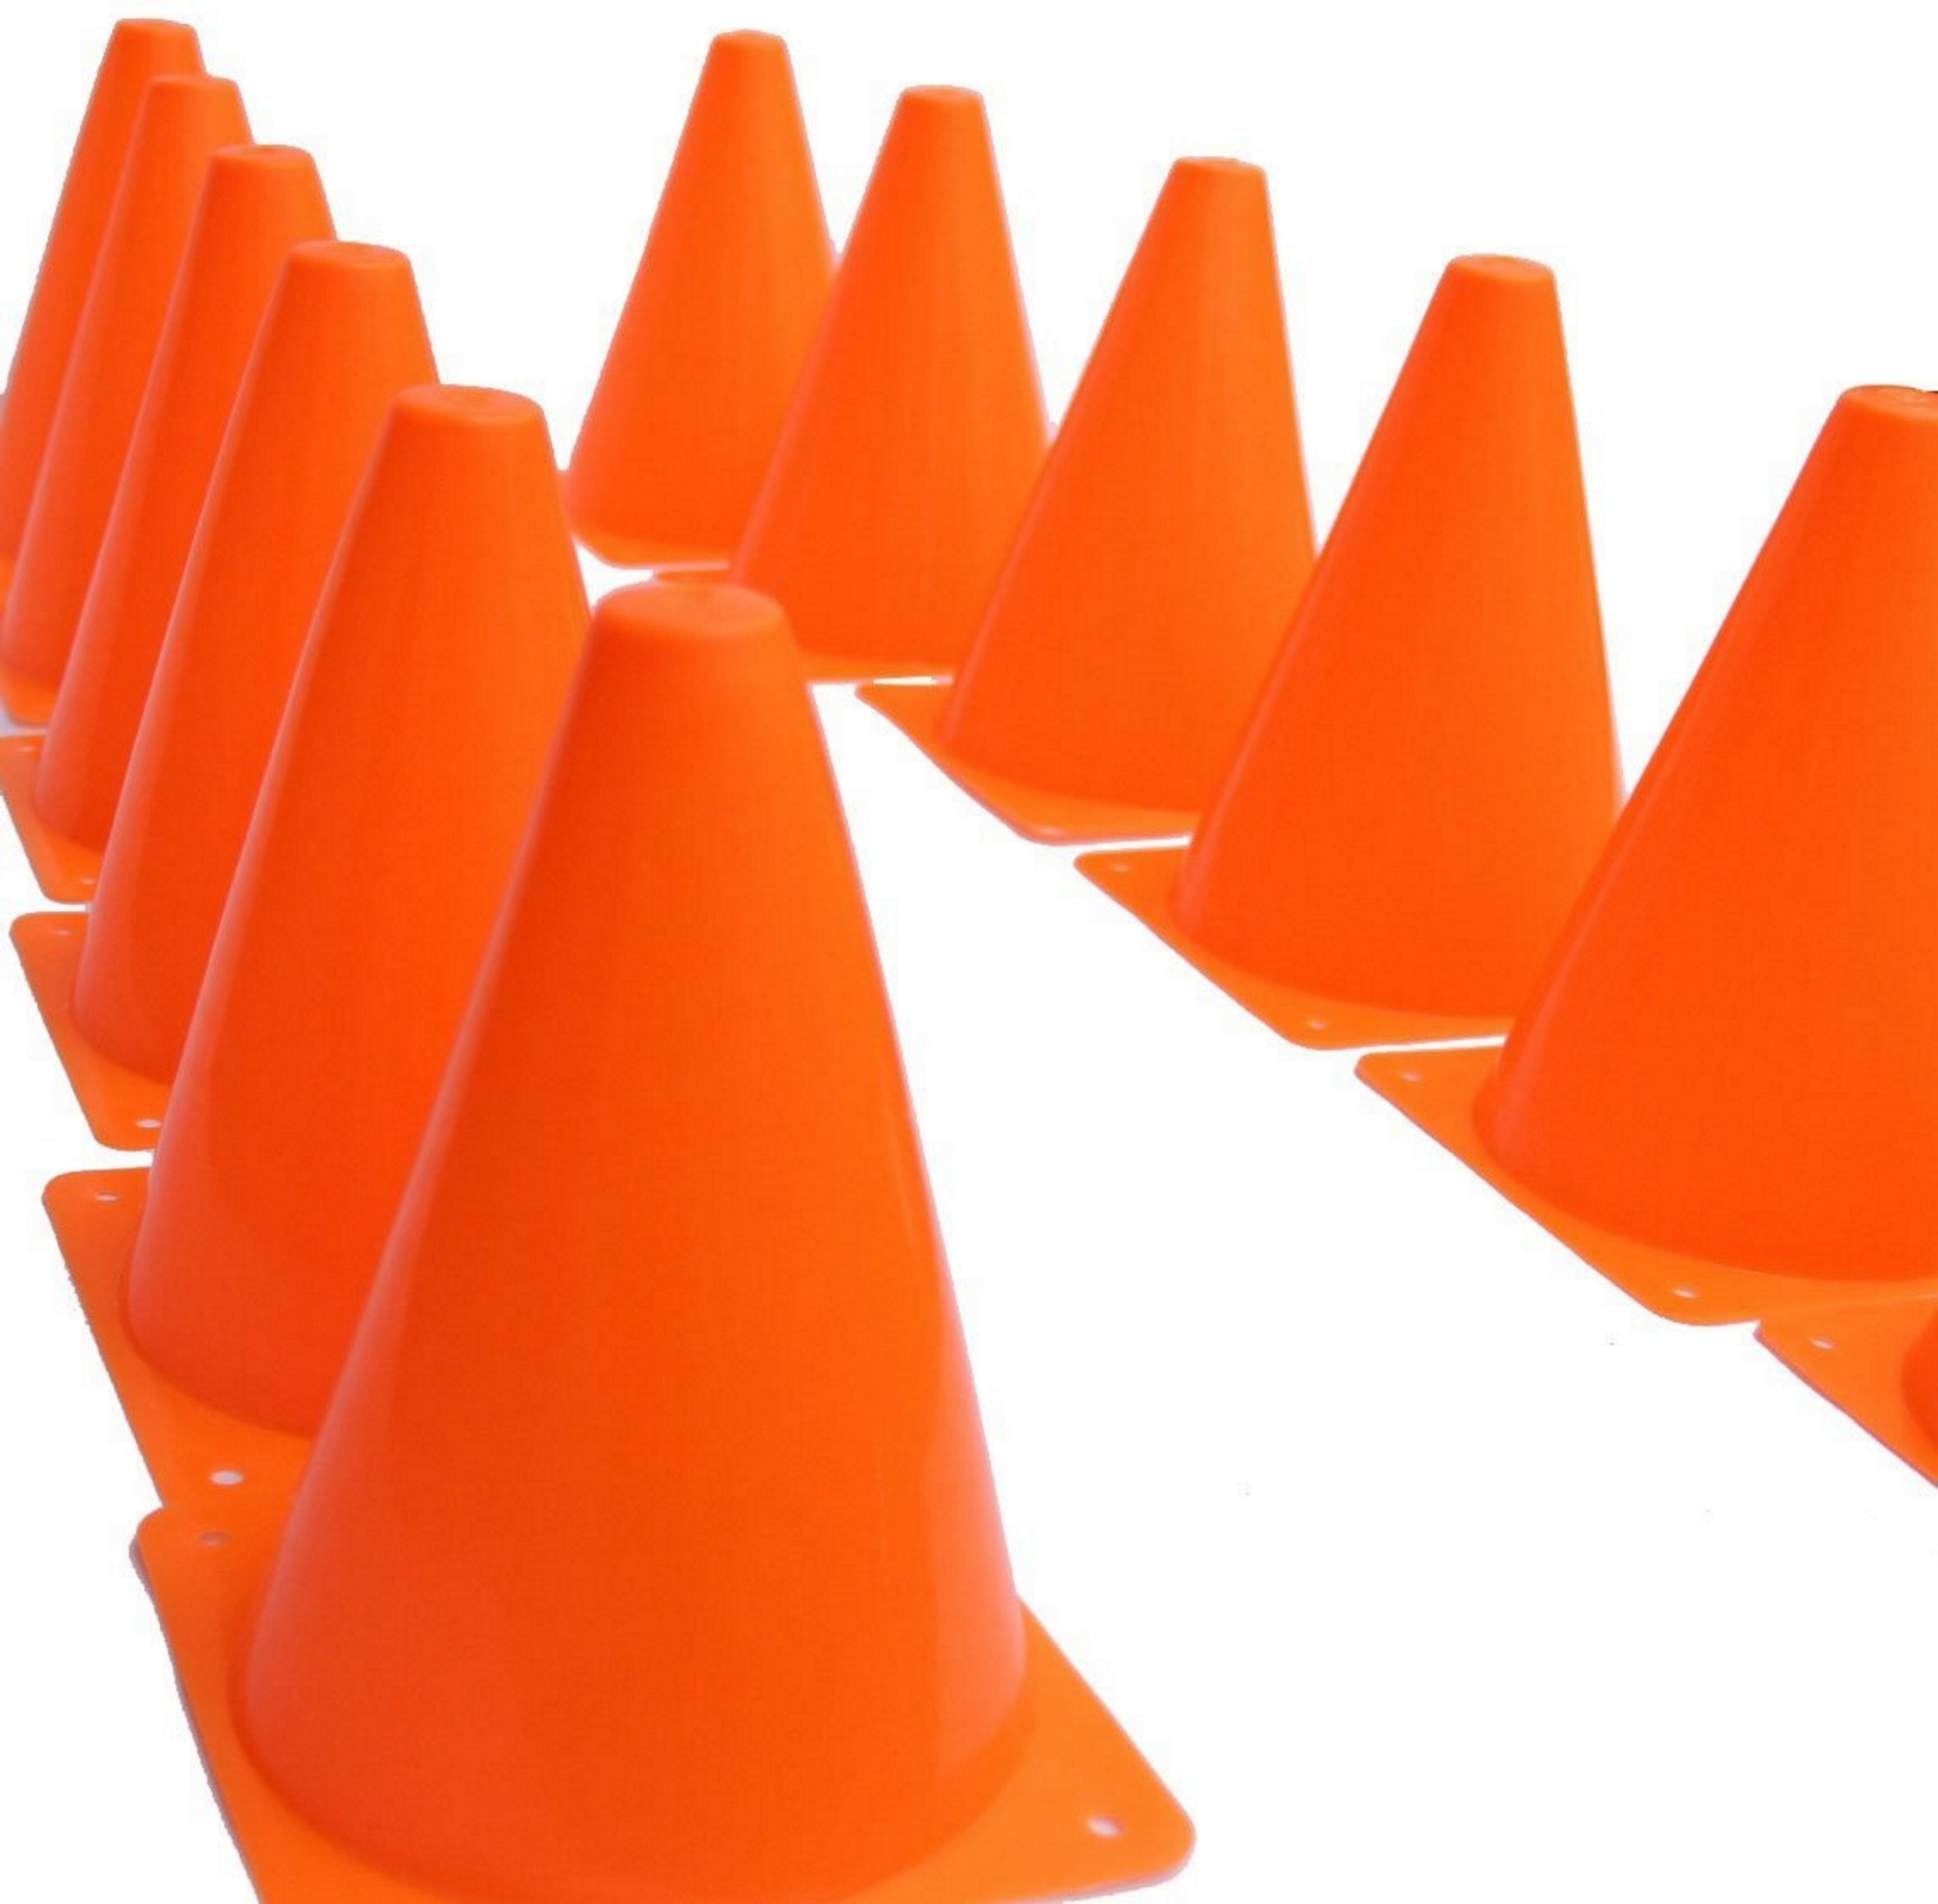 Novelty Place [Multi-Purpose] Neon Orange Sport Training Activity Cones Traffic Construction Safety Cone for Kid and Adult - 7 Inch (Pack of 12)